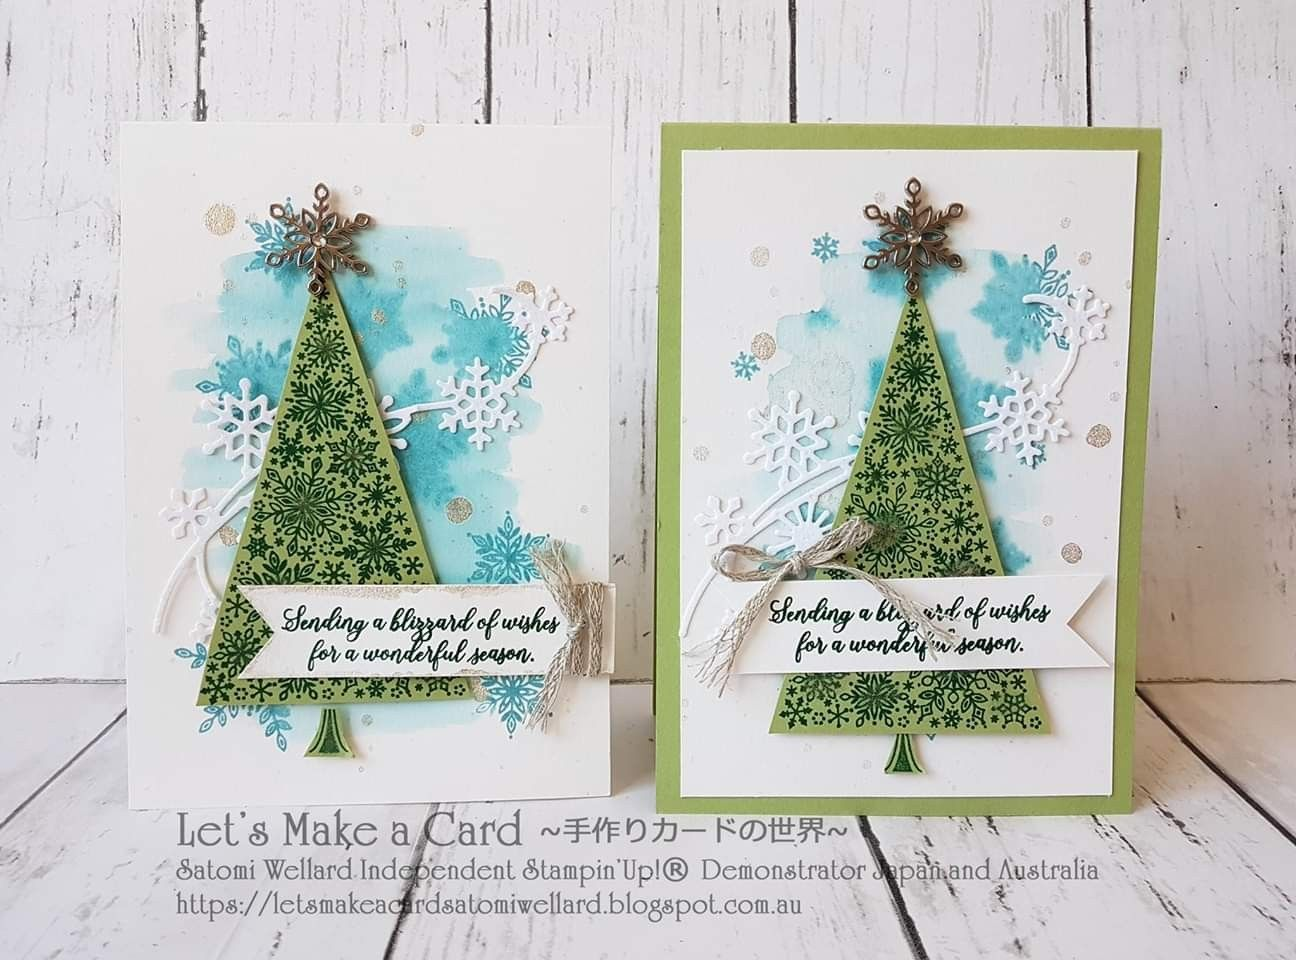 Pin by Vickie Madewell on Stampin' Up (With images